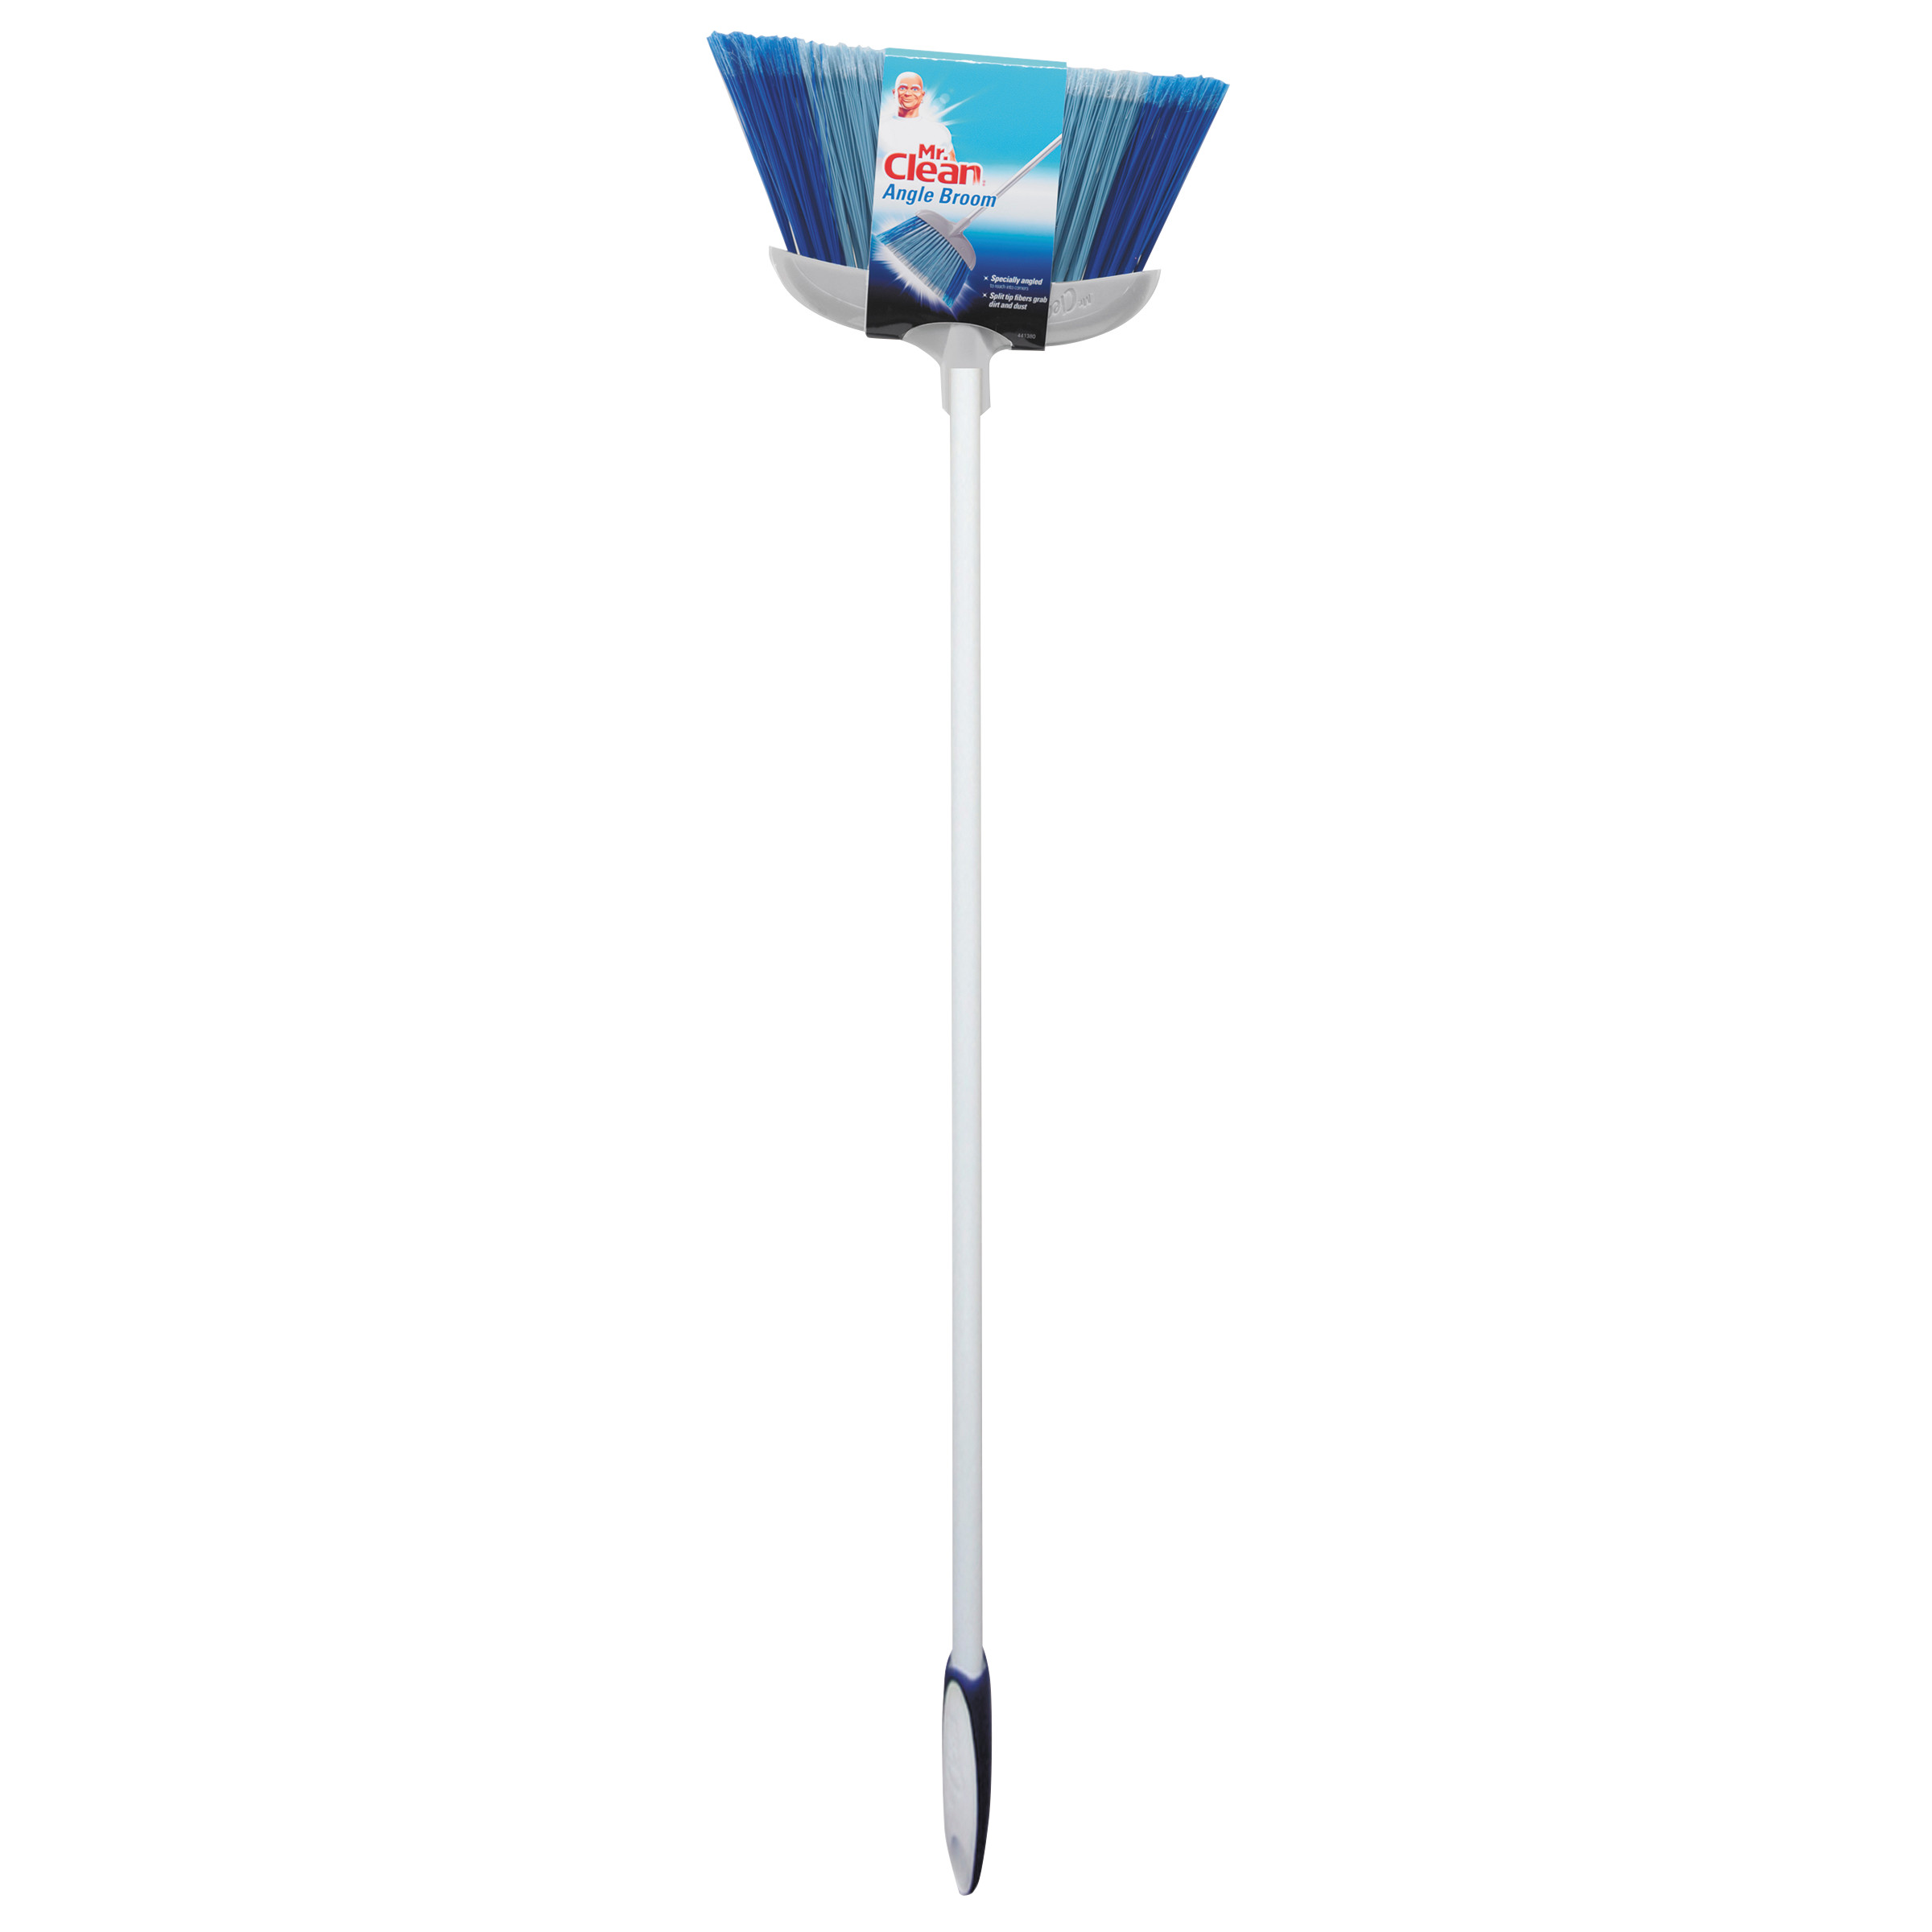 """Mr. Clean Deluxe Angle Broom, 5 1 2"""" Bristles, 55.37\ by BUTLER HOME PRODUCTS"""